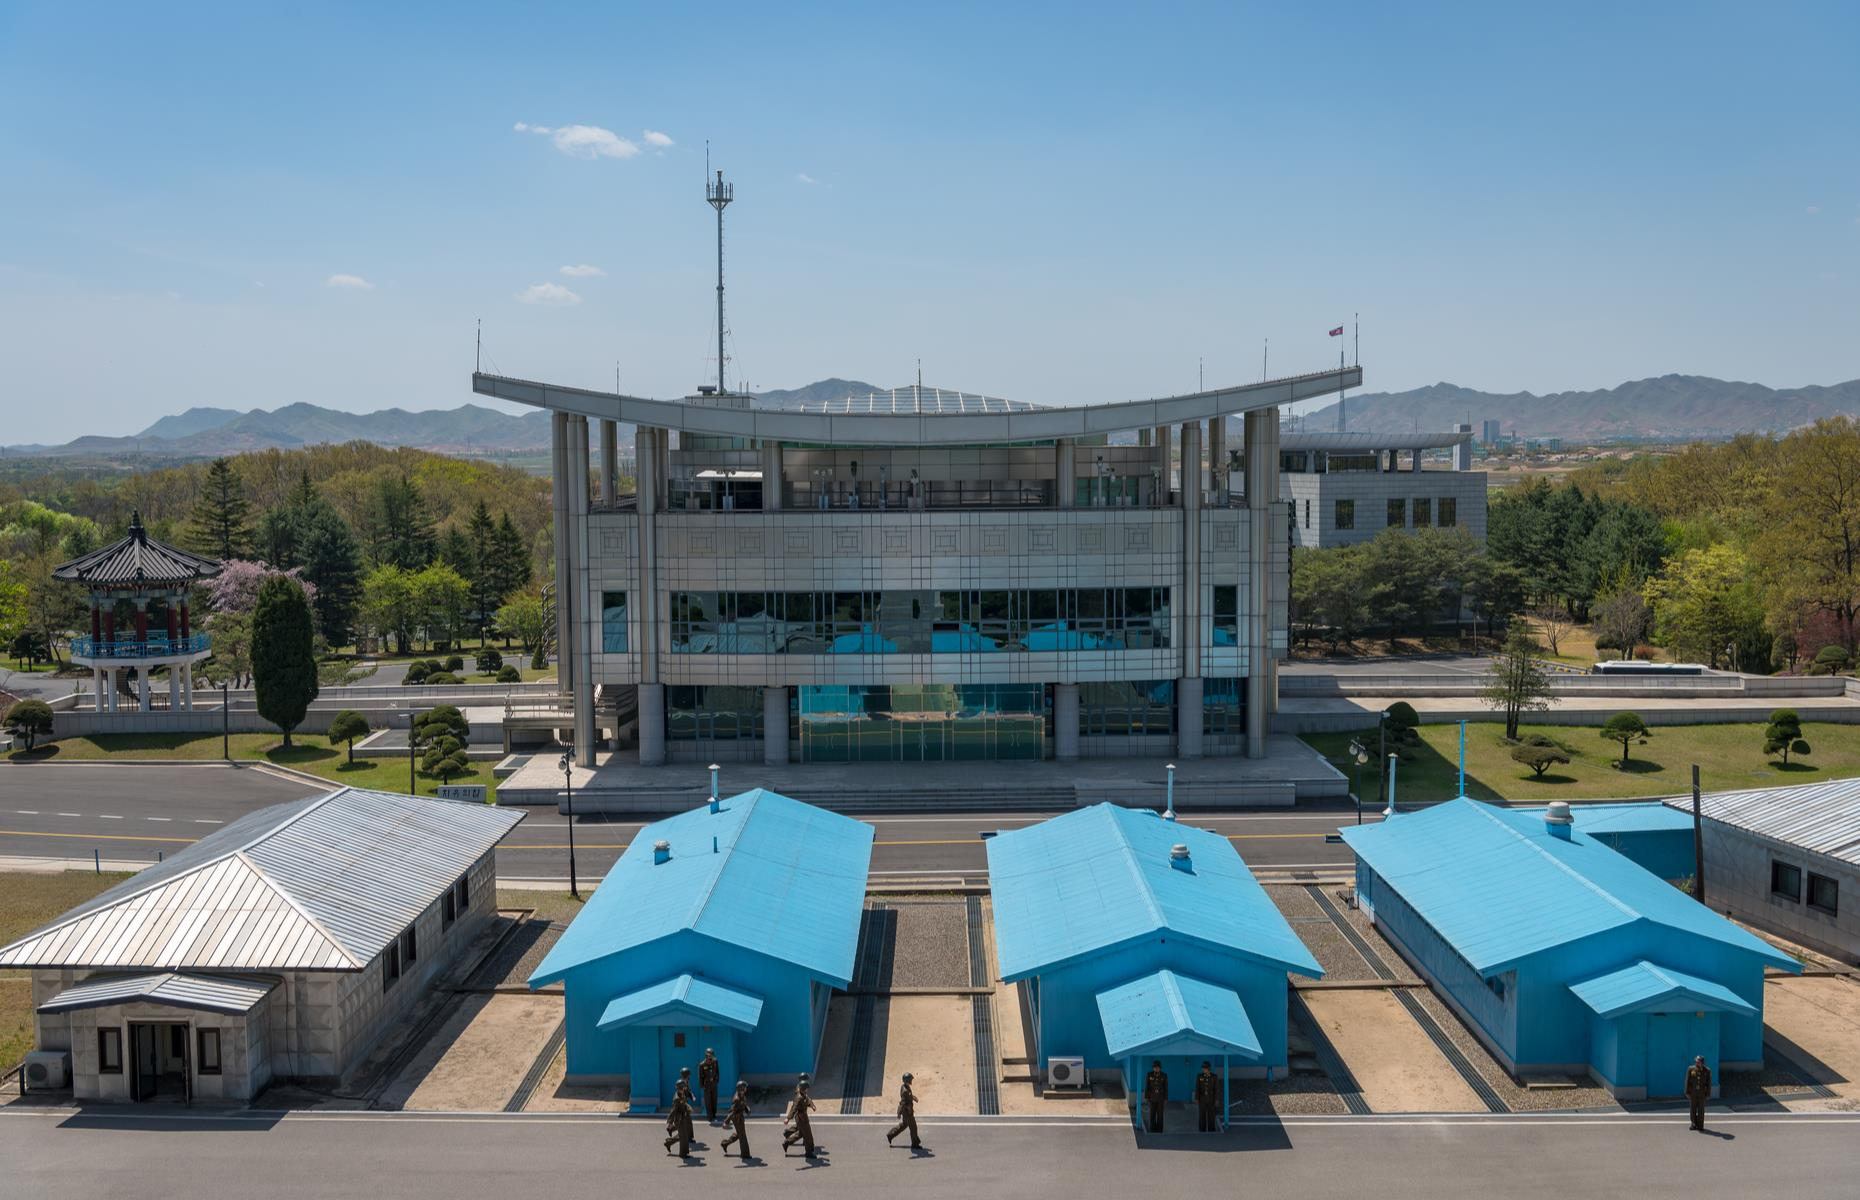 Slide 4 of 51: The most well-known site of the DMZ and the closest point to North Korea, is the JSA (Joint Security Area, pictured). Here soldiers from both countries face each other with only a few feet of gravel in between, always ready to act in case of an emergency. In the JSA, negotiations between North and South Korea are held, with no negotiator having to leave their country, because the border runs right through the center of the building and even the table the delegates sit around.